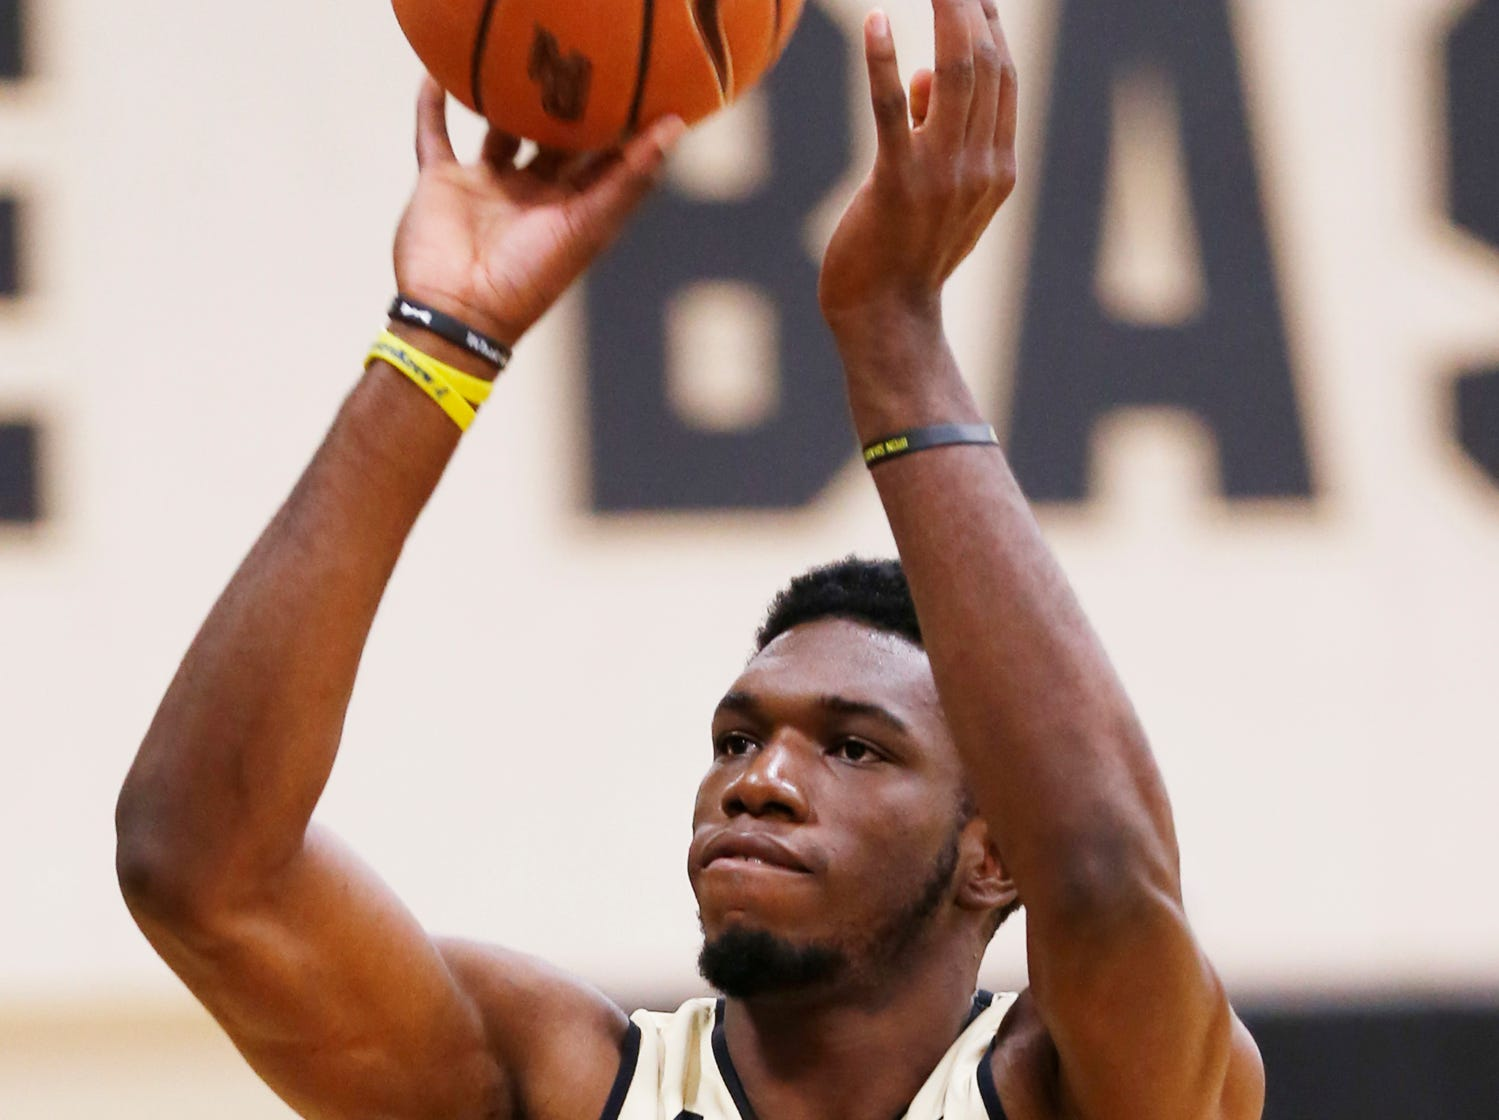 Freshman Emmanuel Dowuona with a shot during the first official practice of the season for Purdue men's basketball Tuesday, September 25, 2018, at Cardinal Court in Mackey Arena.